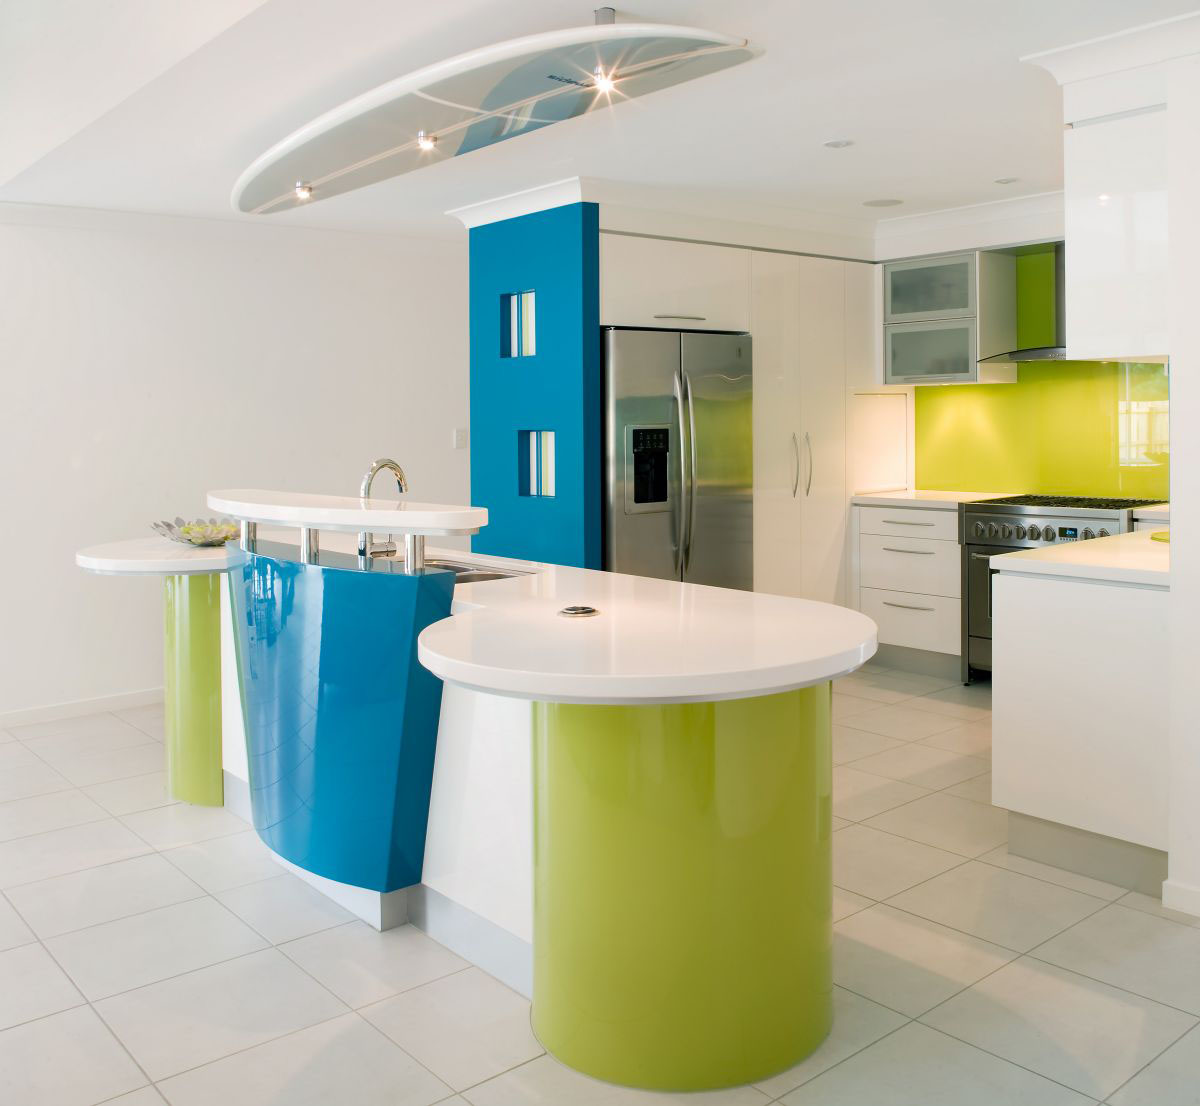 funky kitchen design by Kim Duffin is perfect for a modern beach house ...